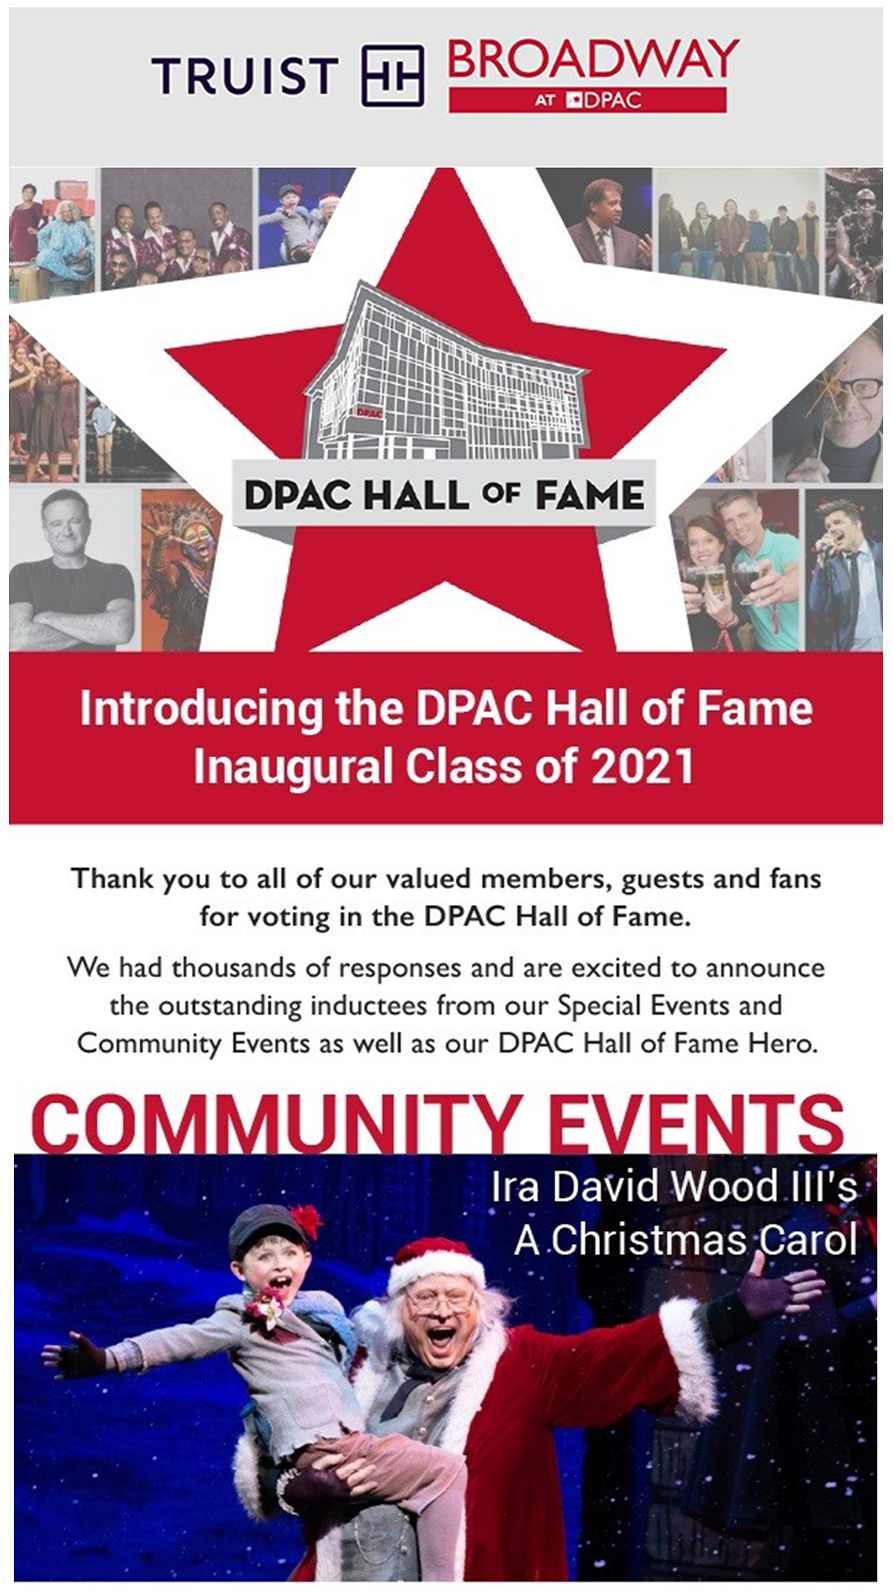 A CHRISTMAS CAROL has been inducted into DPAC's 2021 Hall of Fame!